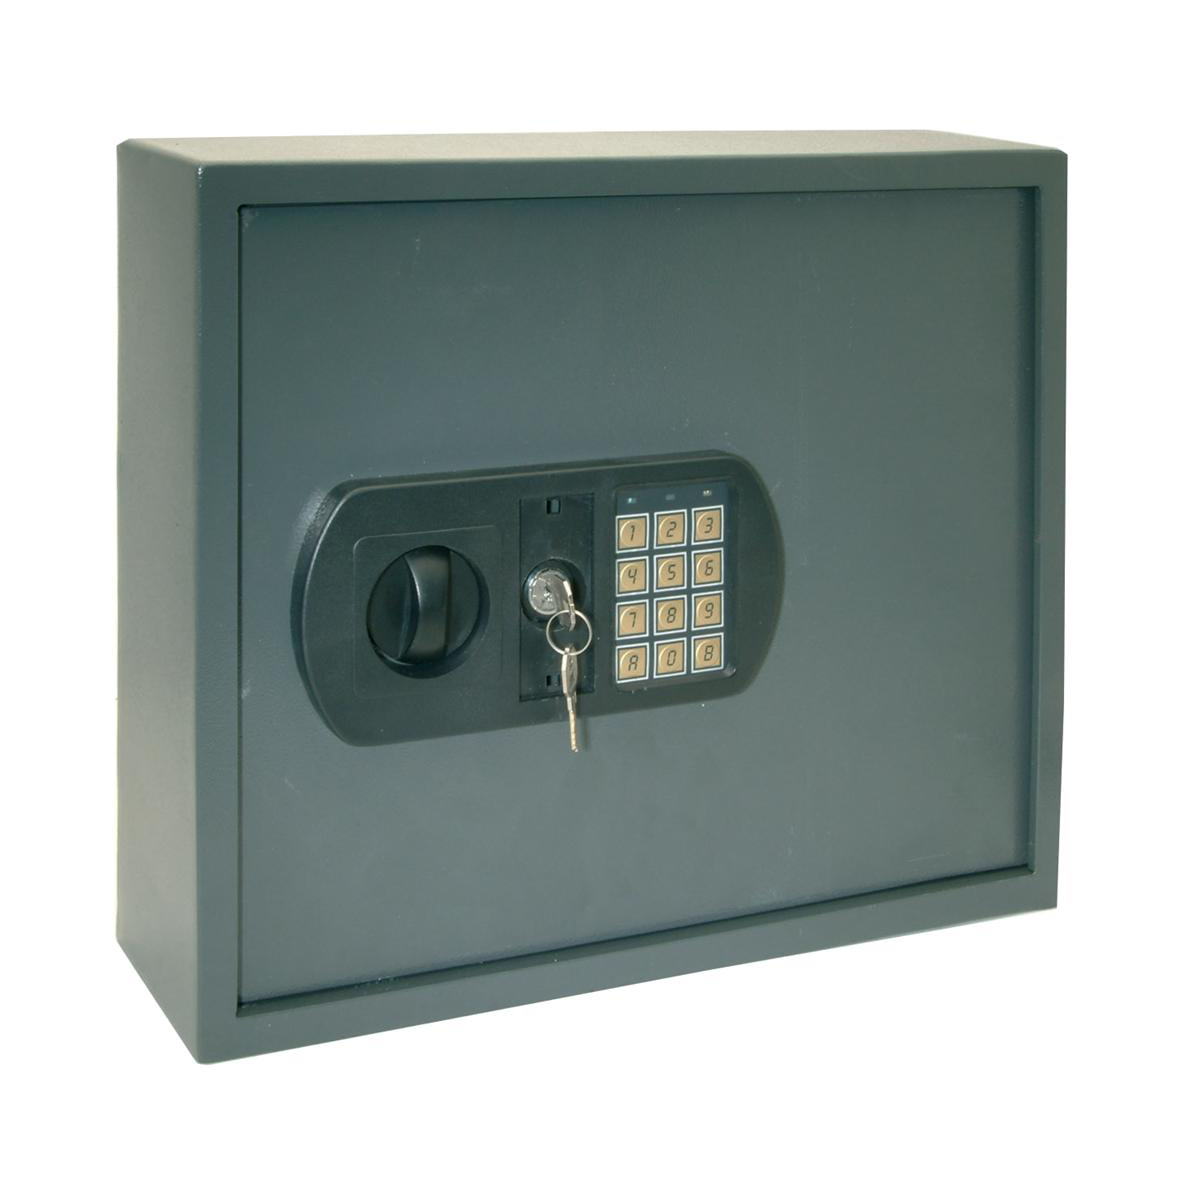 Key Cabinets High Security Key Safe Electronic Key Pad and 30mm Double Bolt Locking 60 Keys